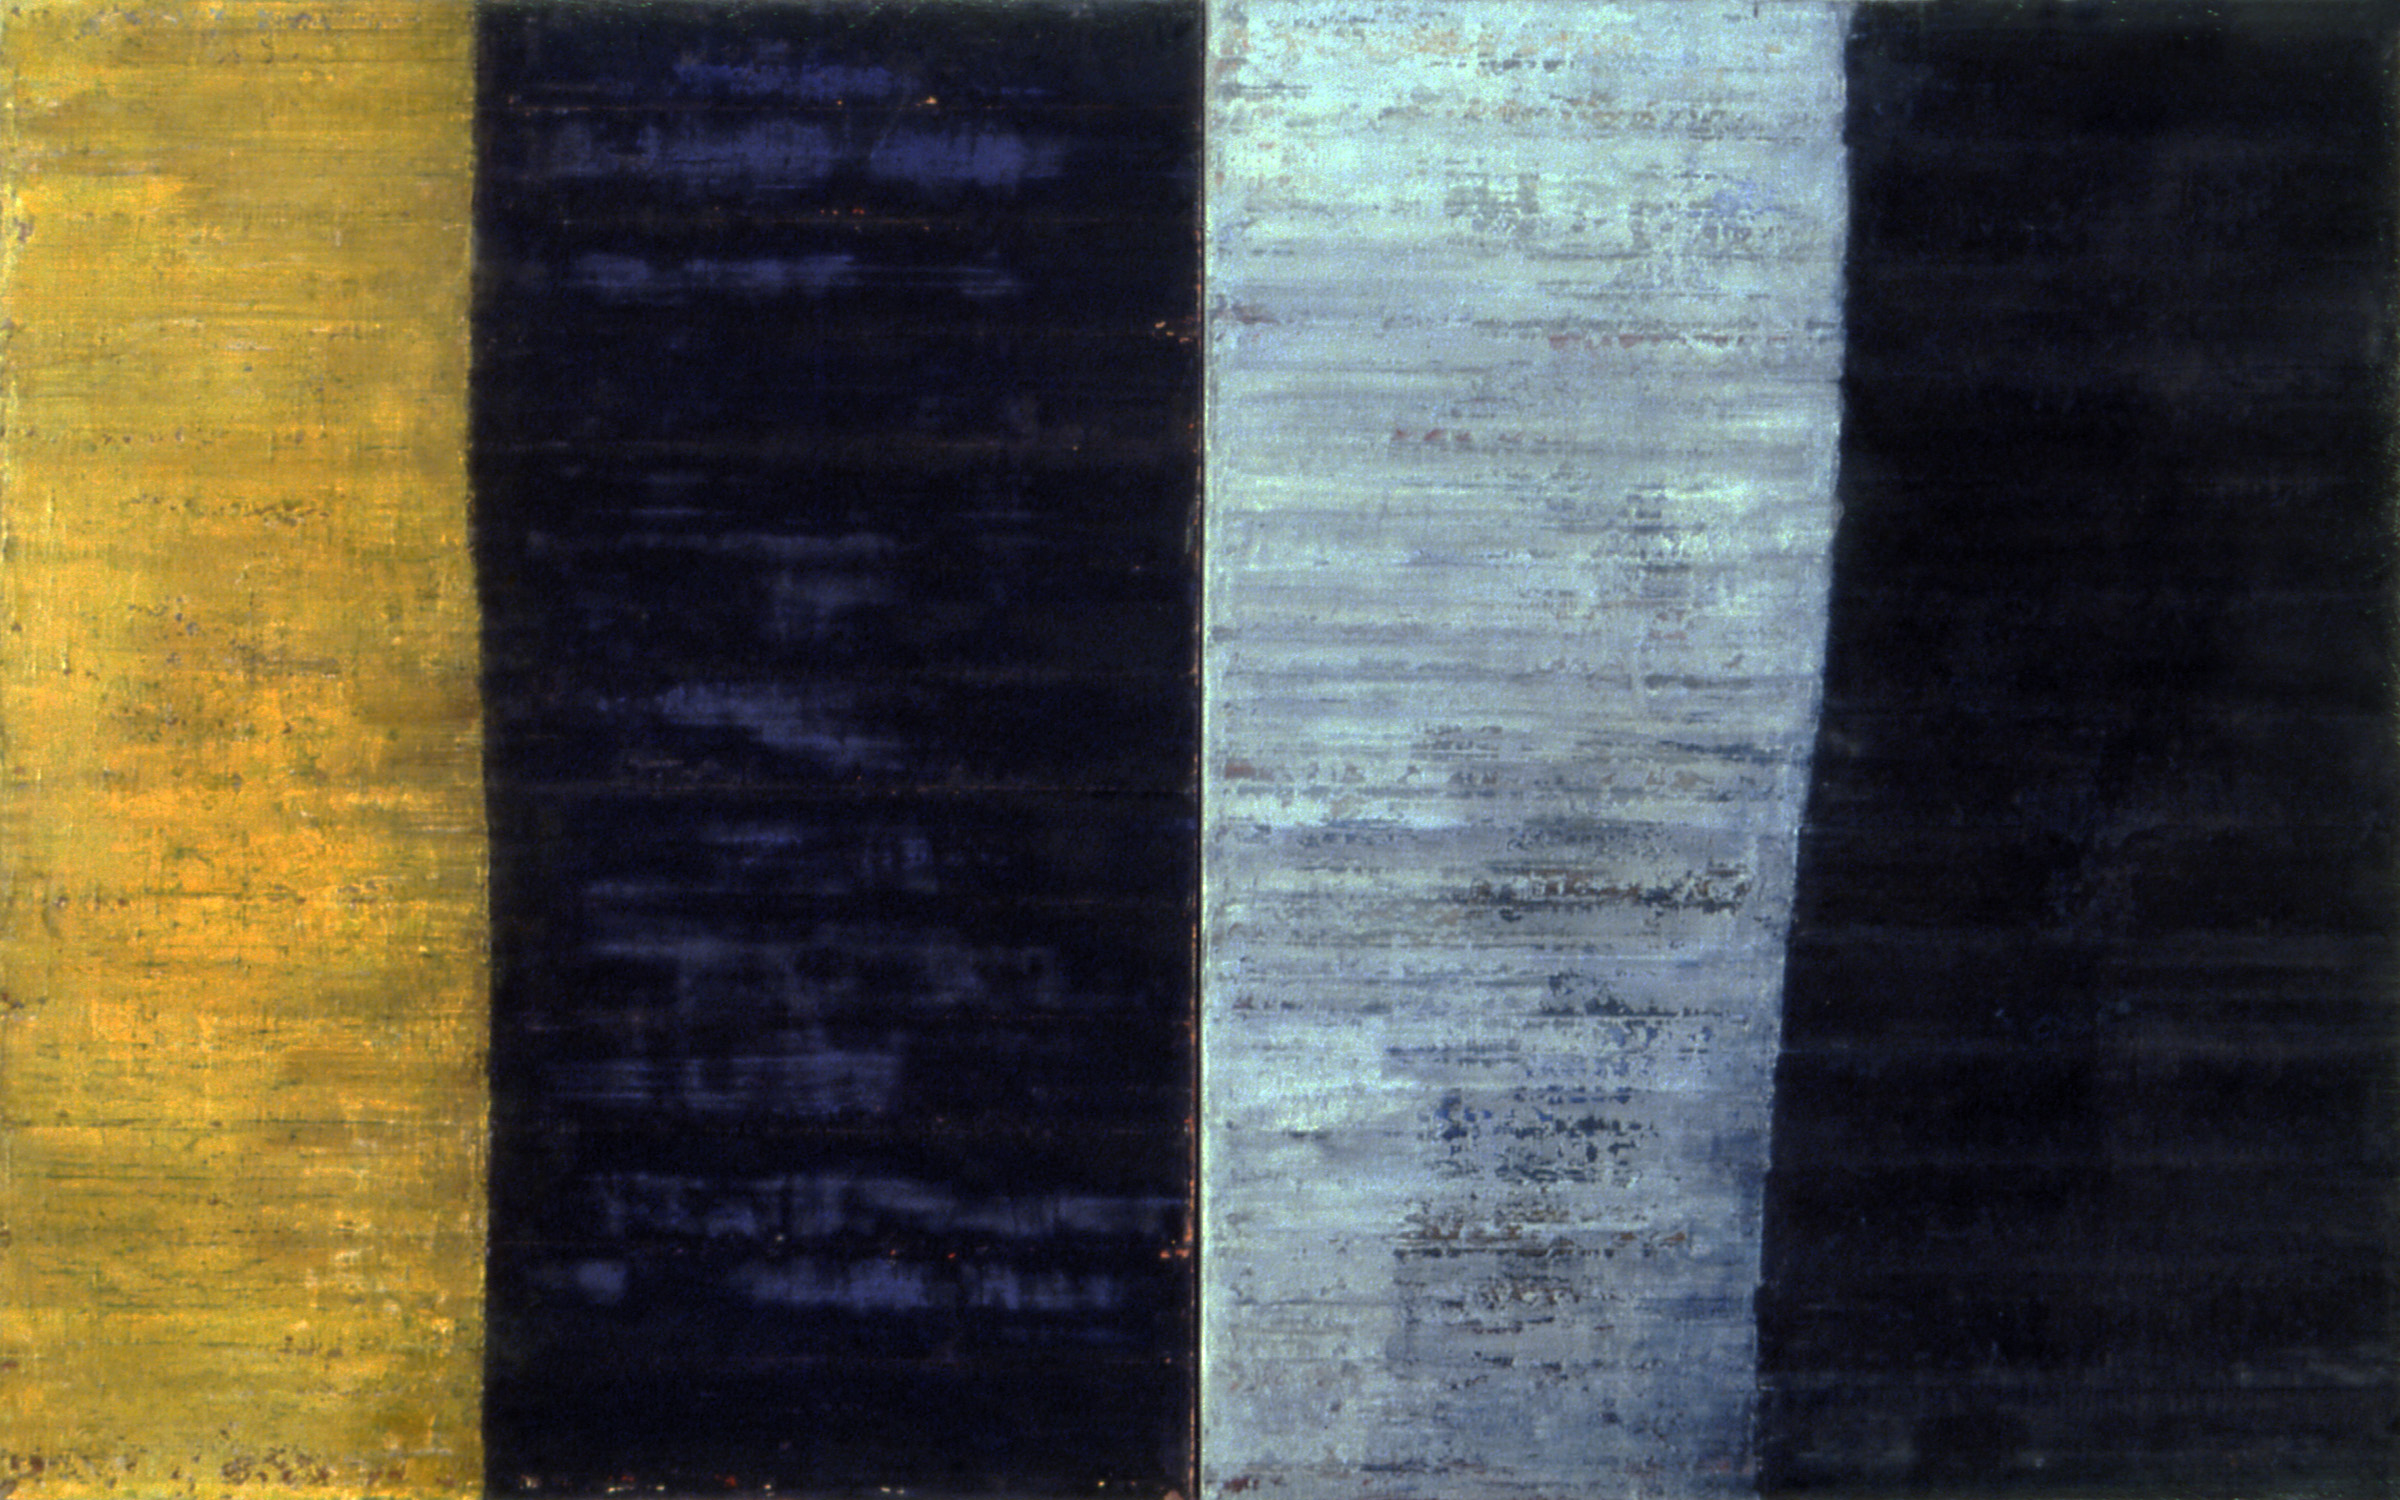 Linea Terminale: 3.06, 2006, Oil on linen over panels, 20 x 36 inches.